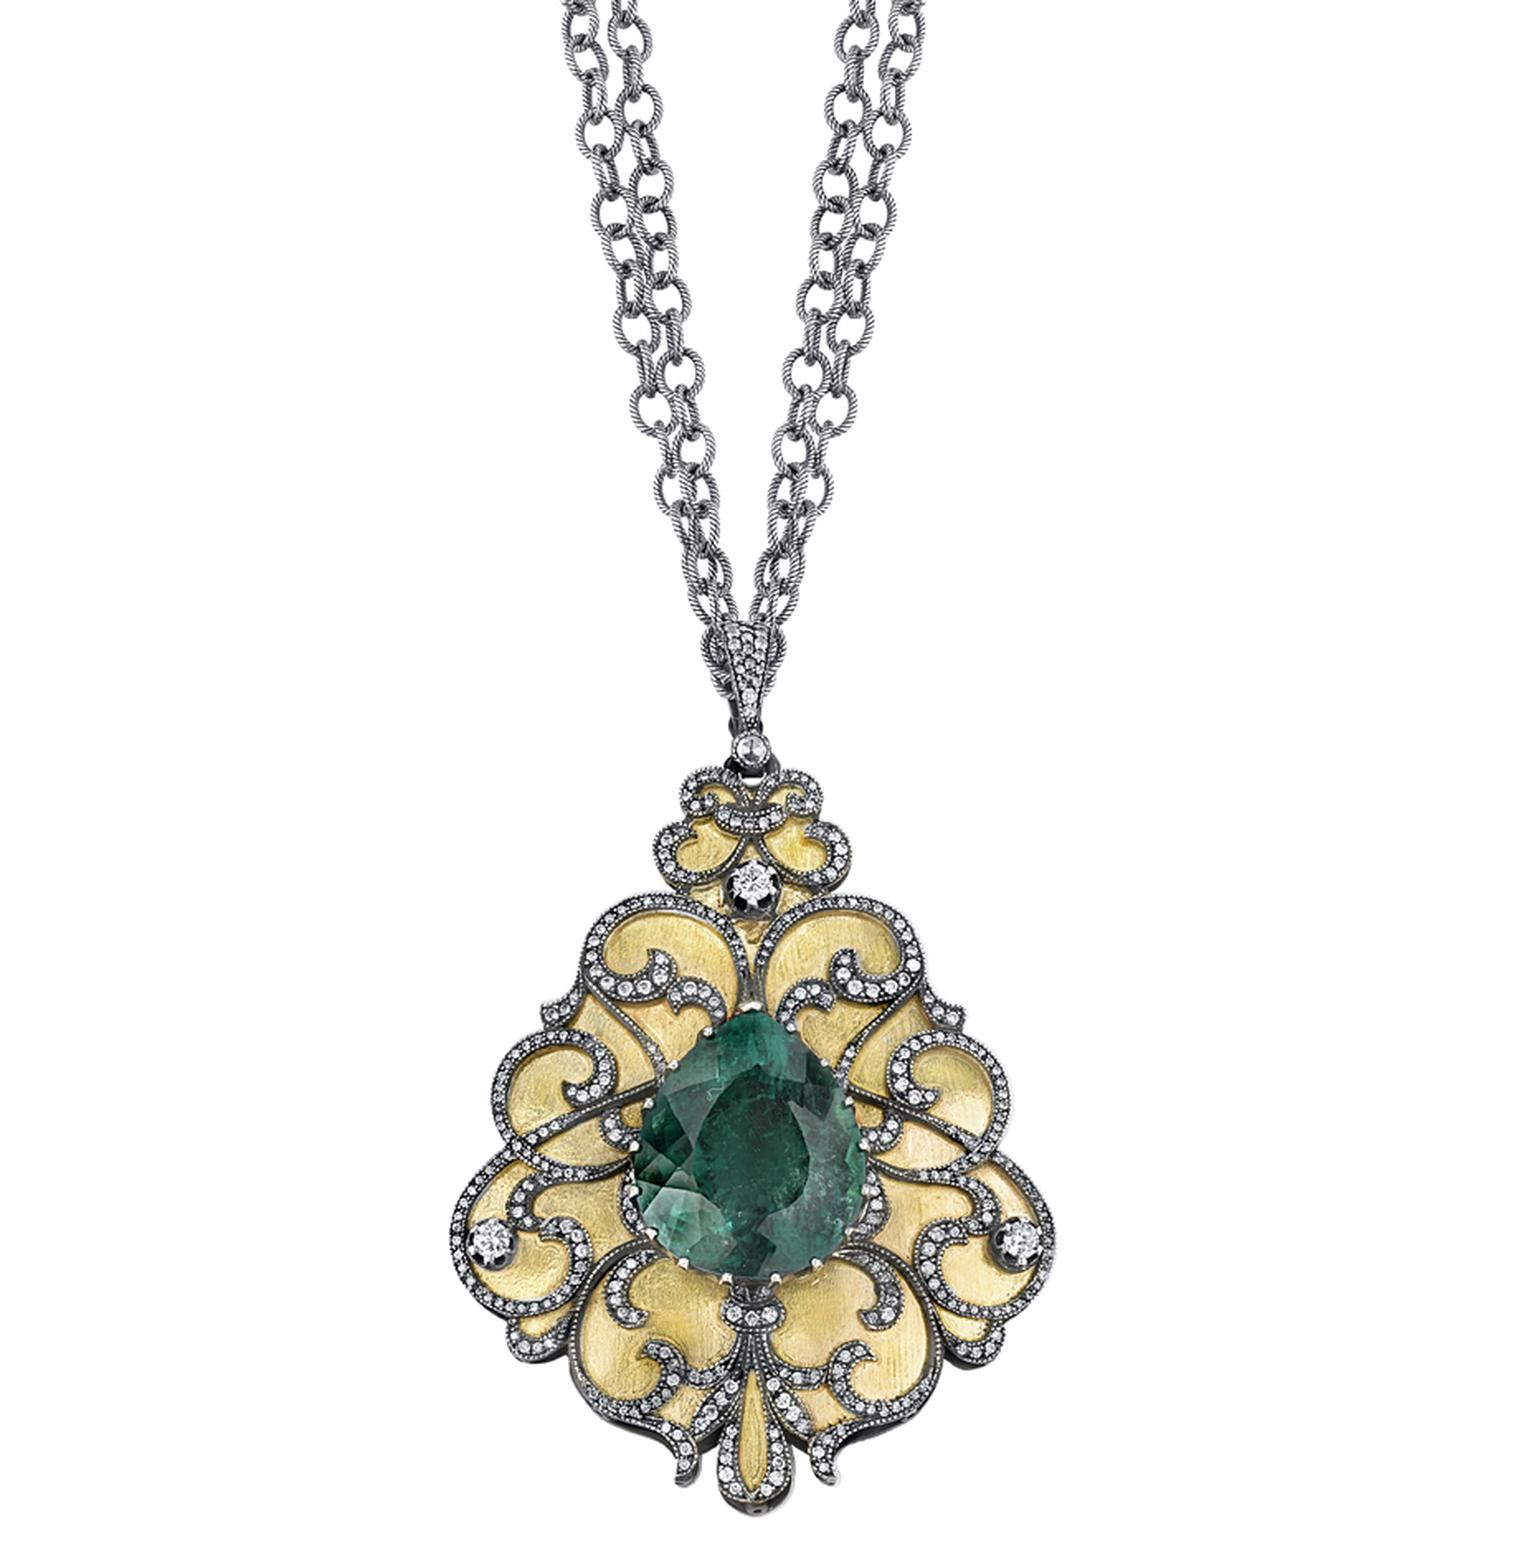 Arman Sarkisyan pendant with blue tourmaline, diamonds and oxidised silver